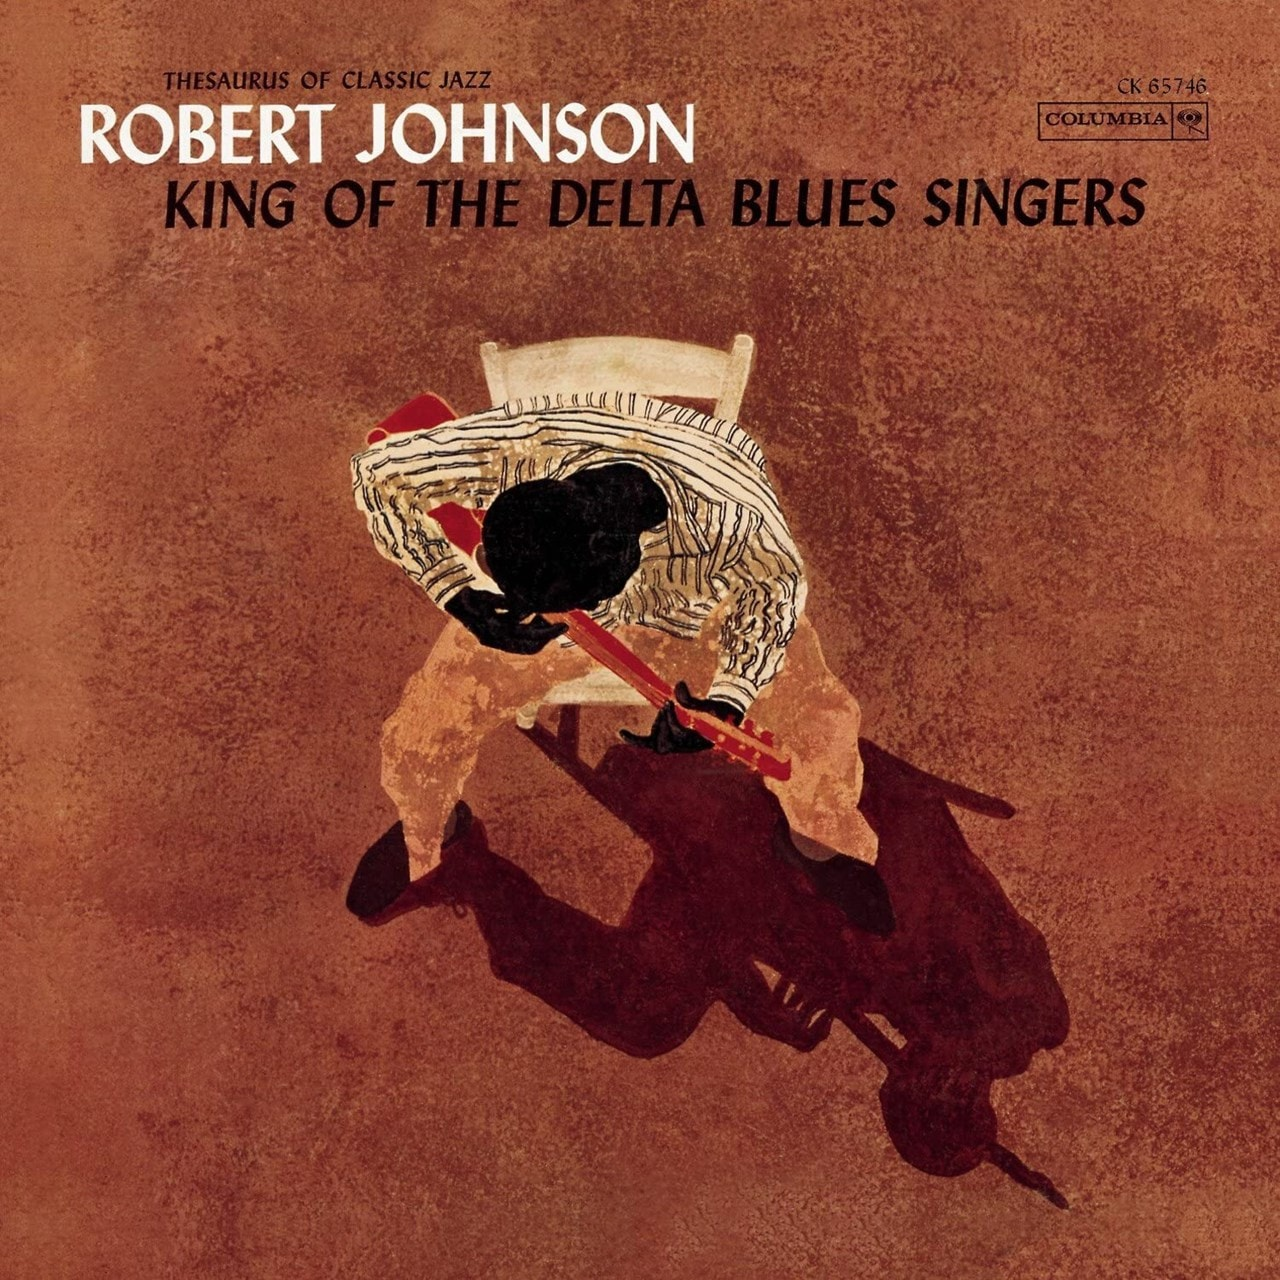 King of the Delta Blues Singers - 1